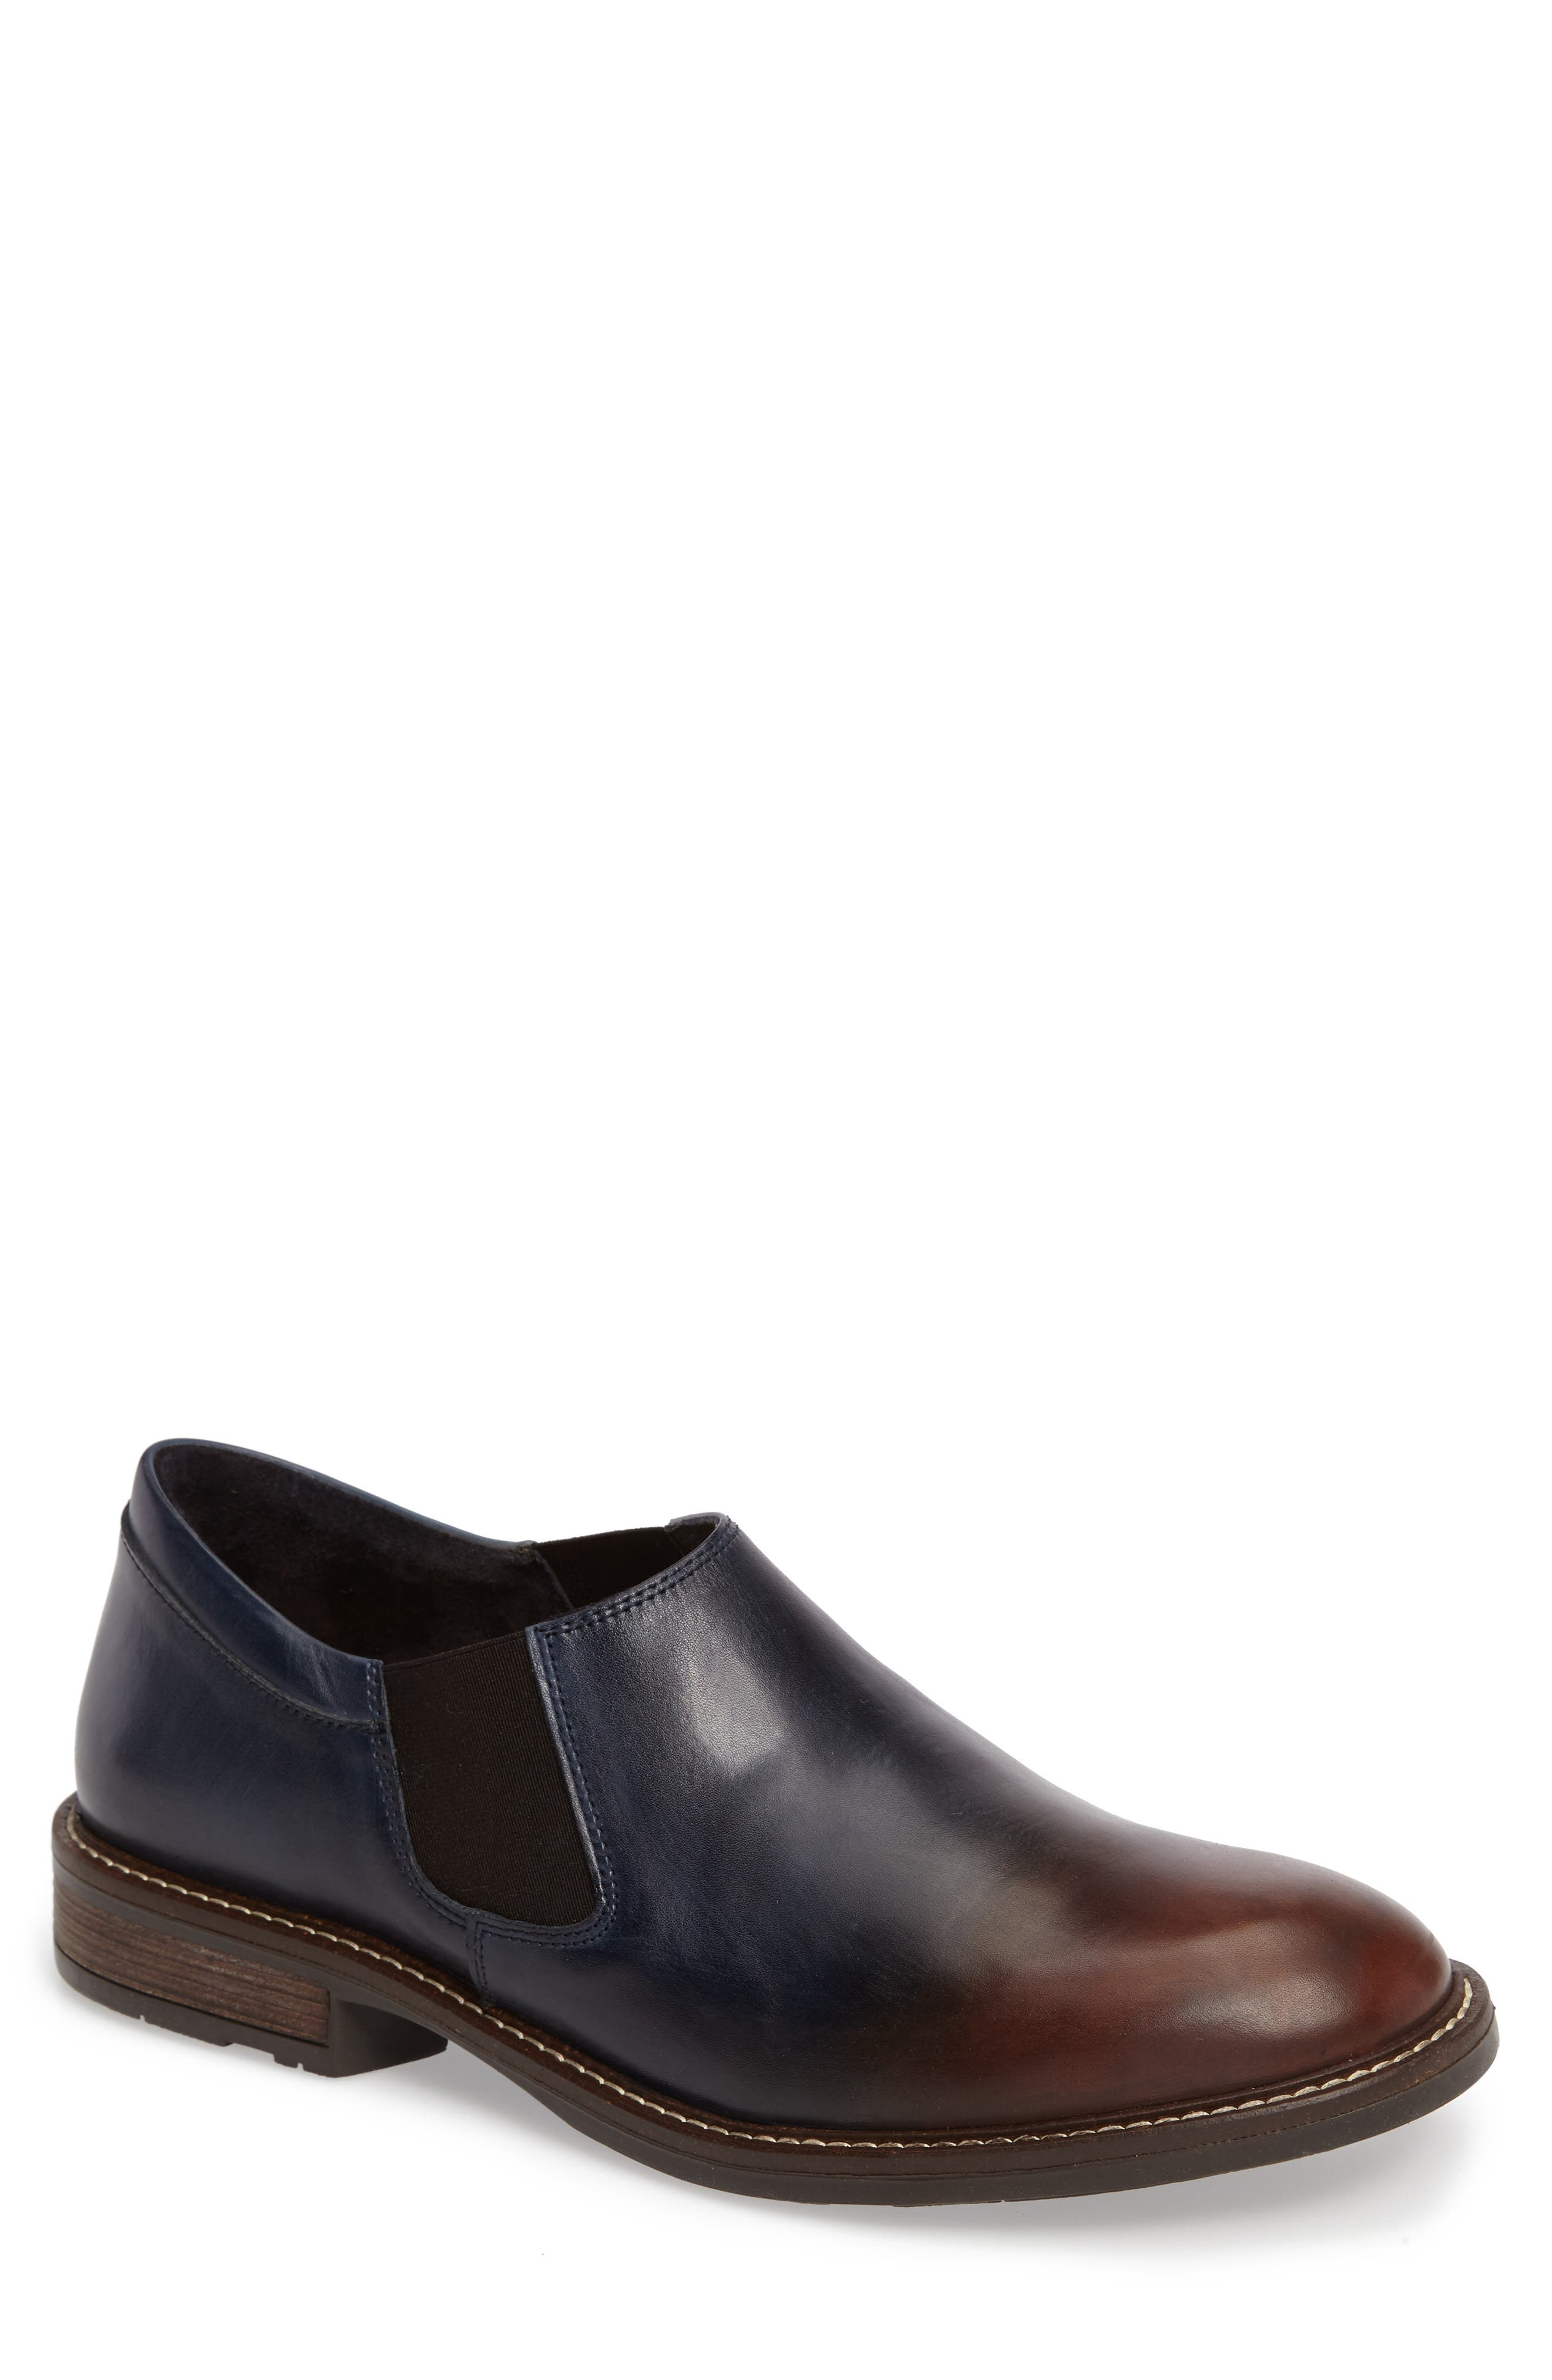 Naot Director Venetian Loafer (Men)